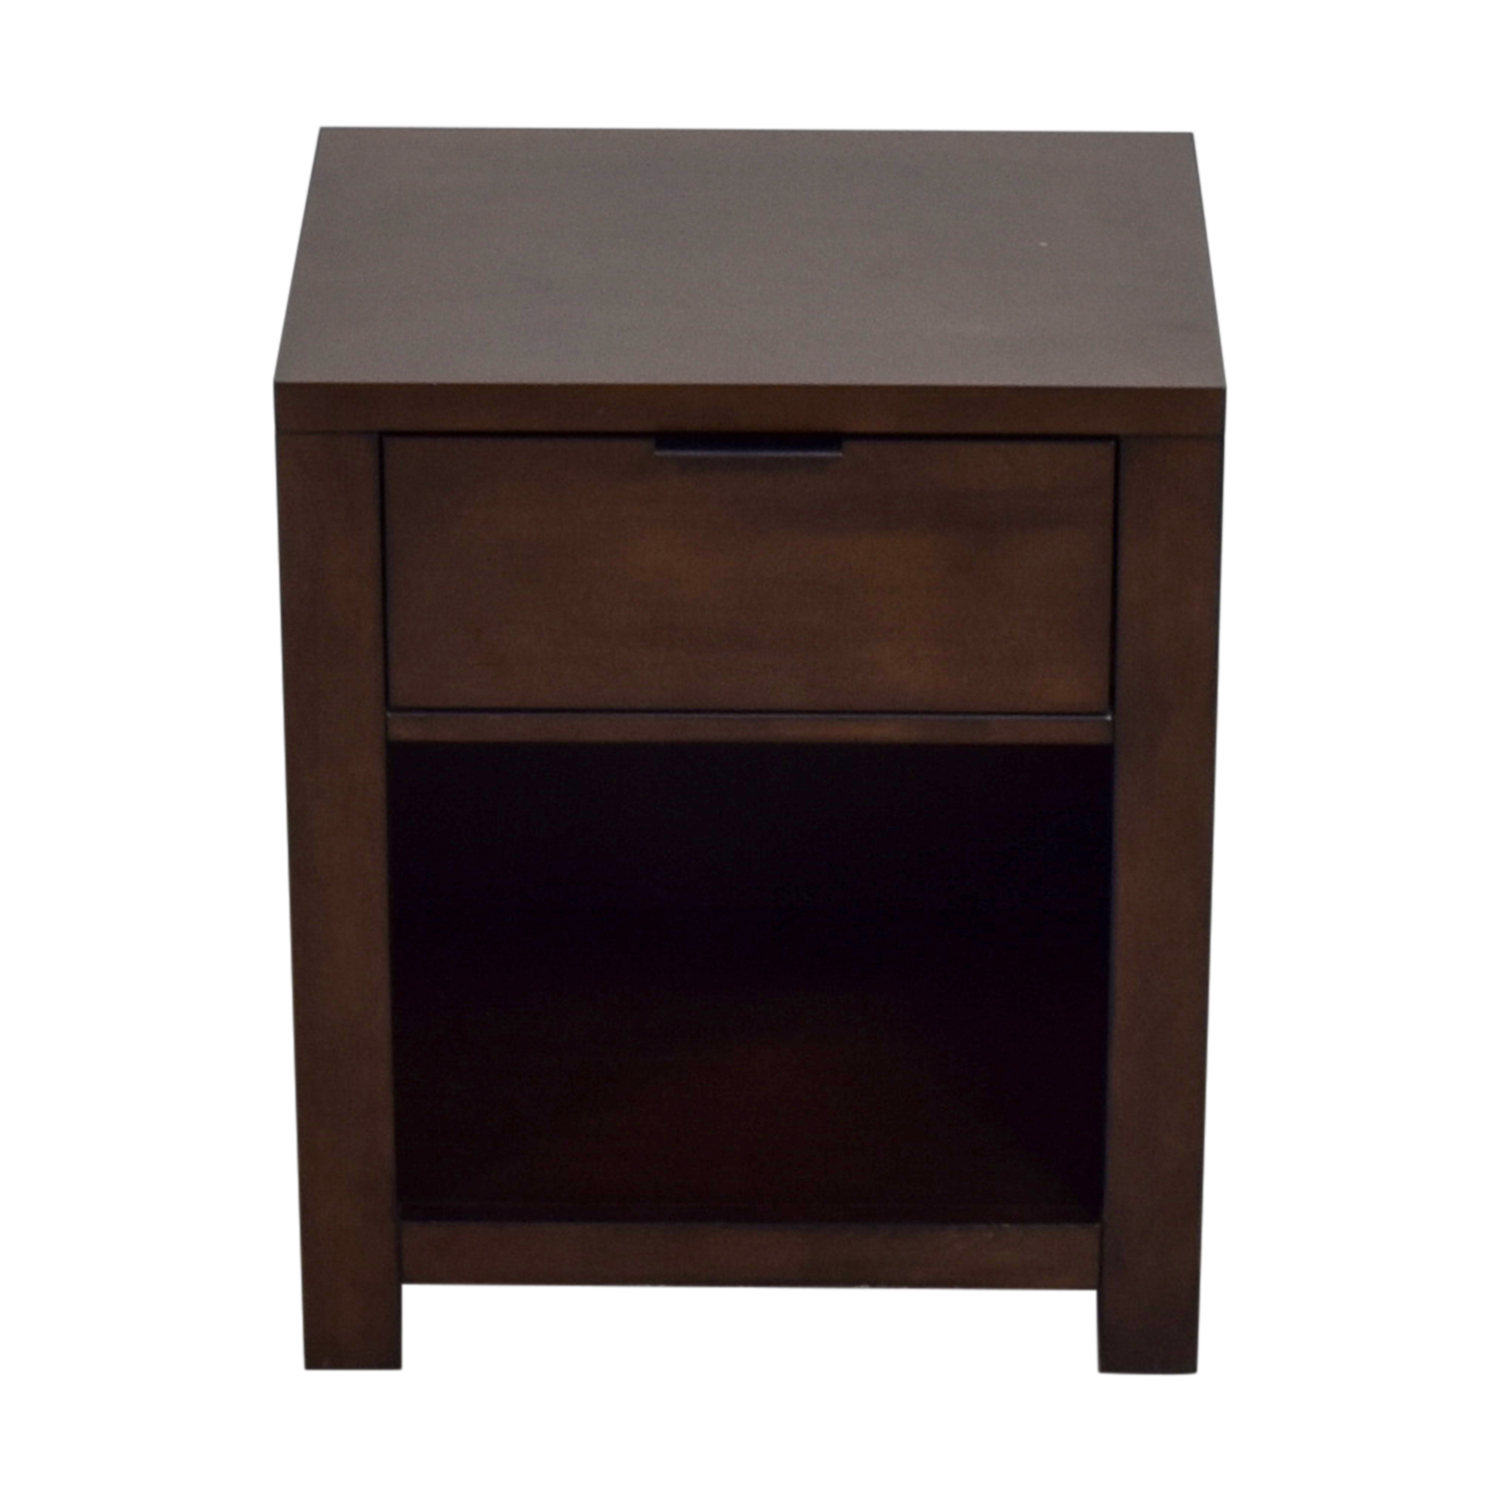 Macy's Macy's Single Drawer Wood End Table price